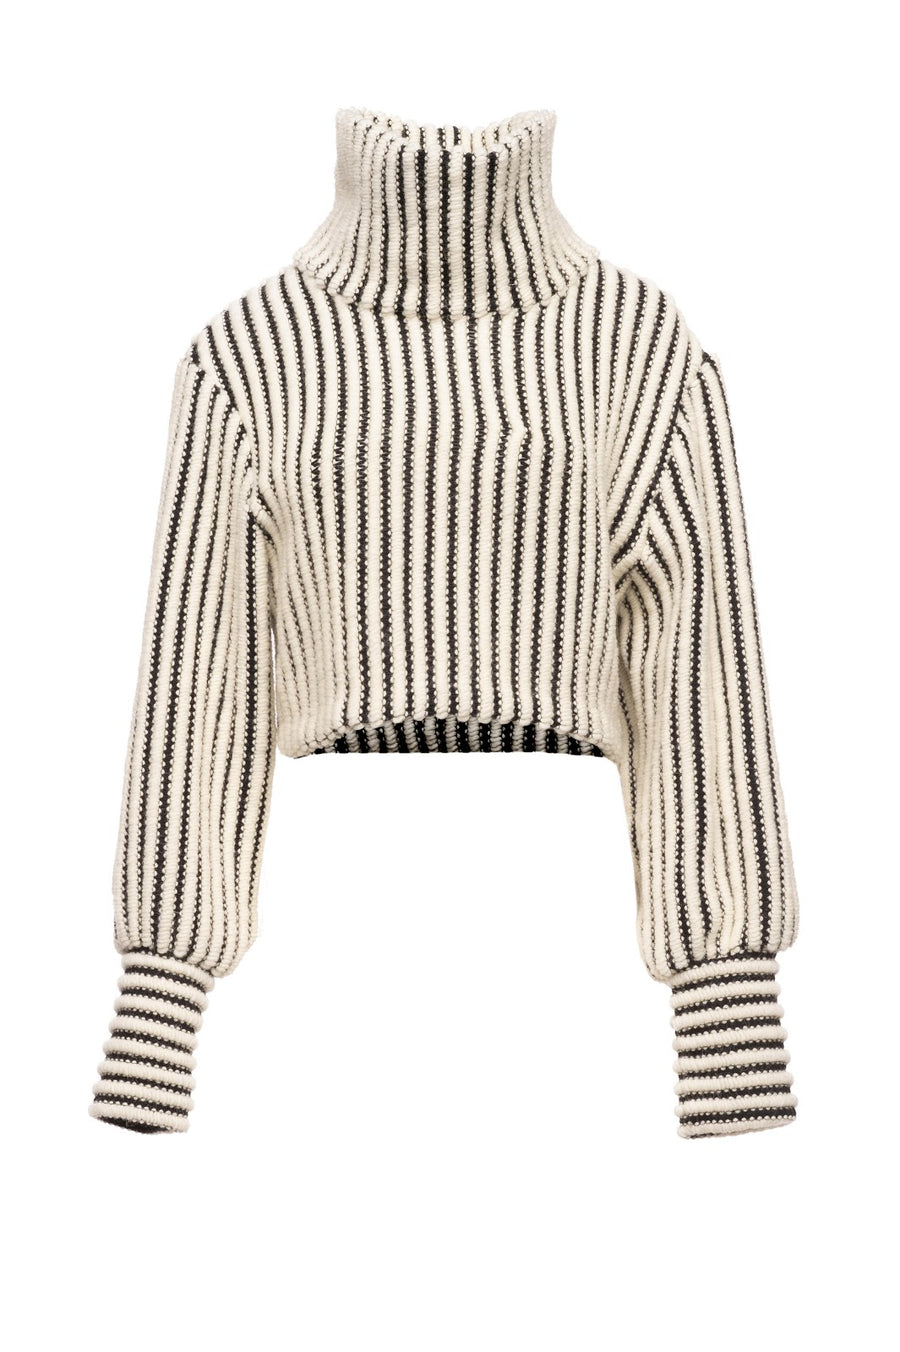 Cropped 3D Knit Turtle Neck Sid Neigum Off Figure